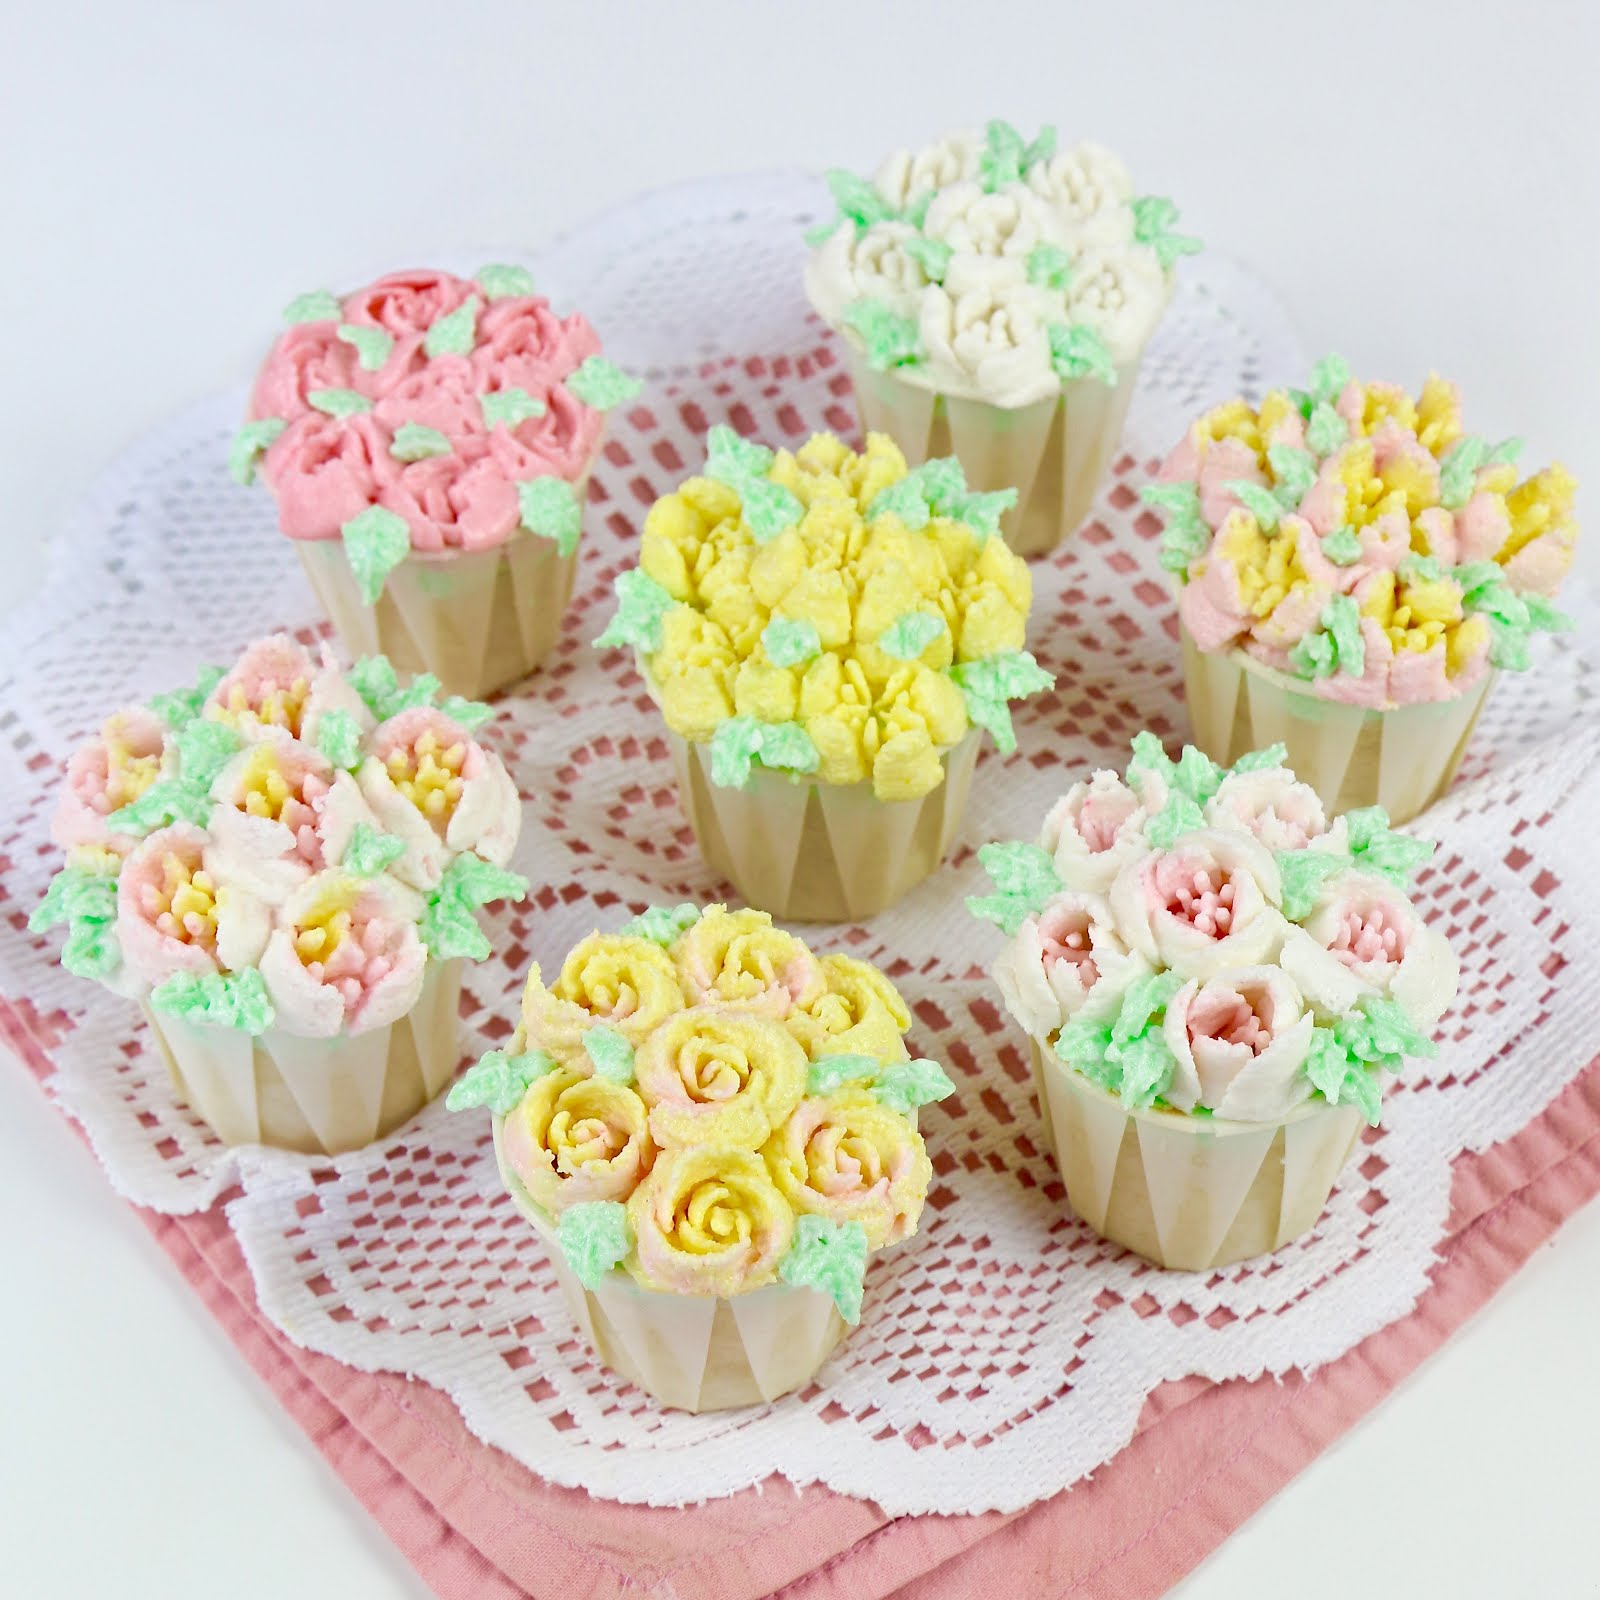 VIDEO Russian Piping Tip Flower Cupcakes Lindsay Ann Bakes